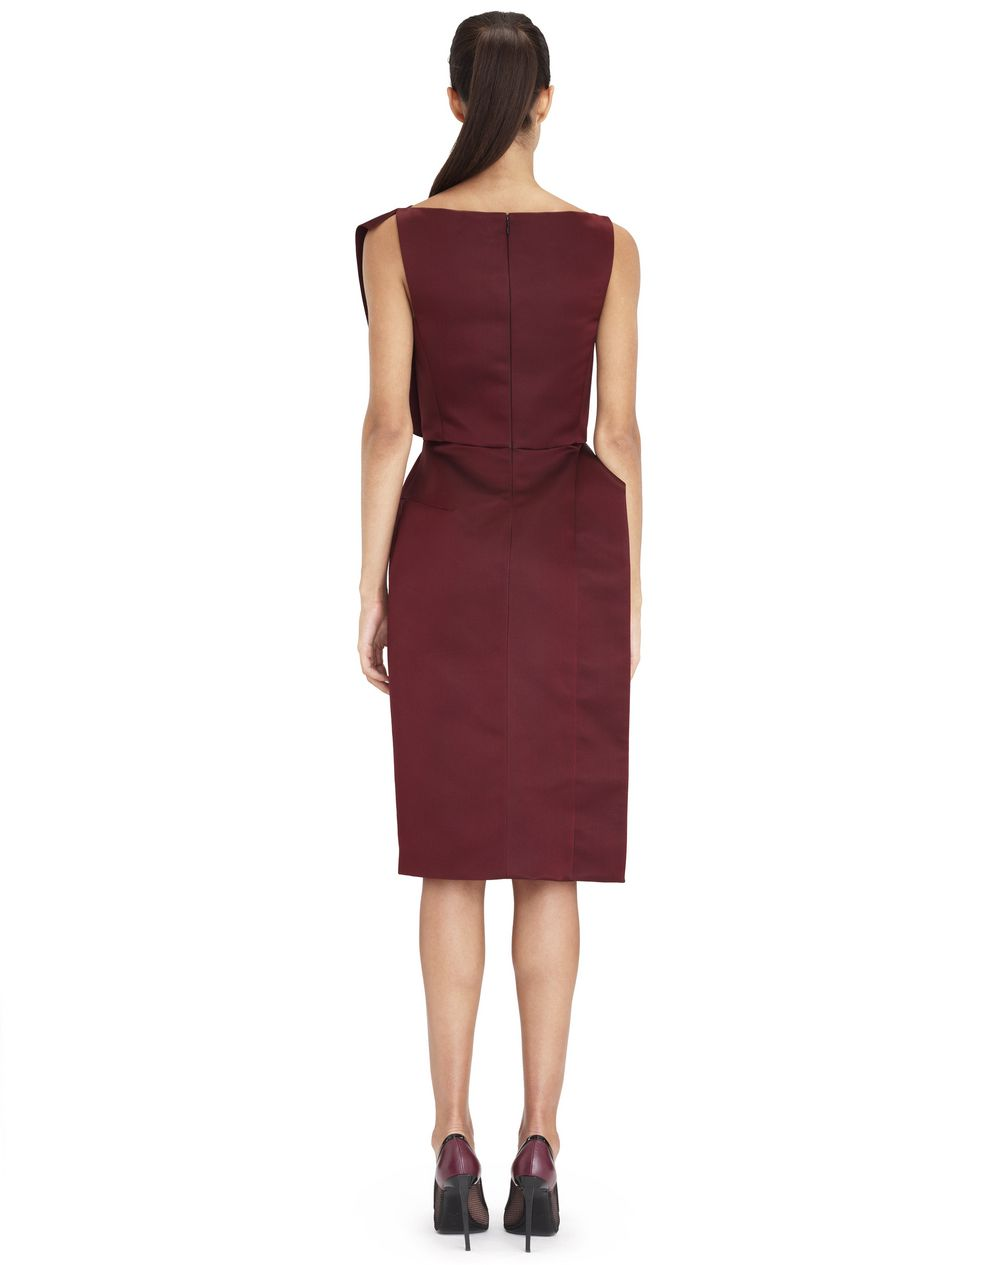 GARNET ASYMMETRICAL DRESS - Lanvin